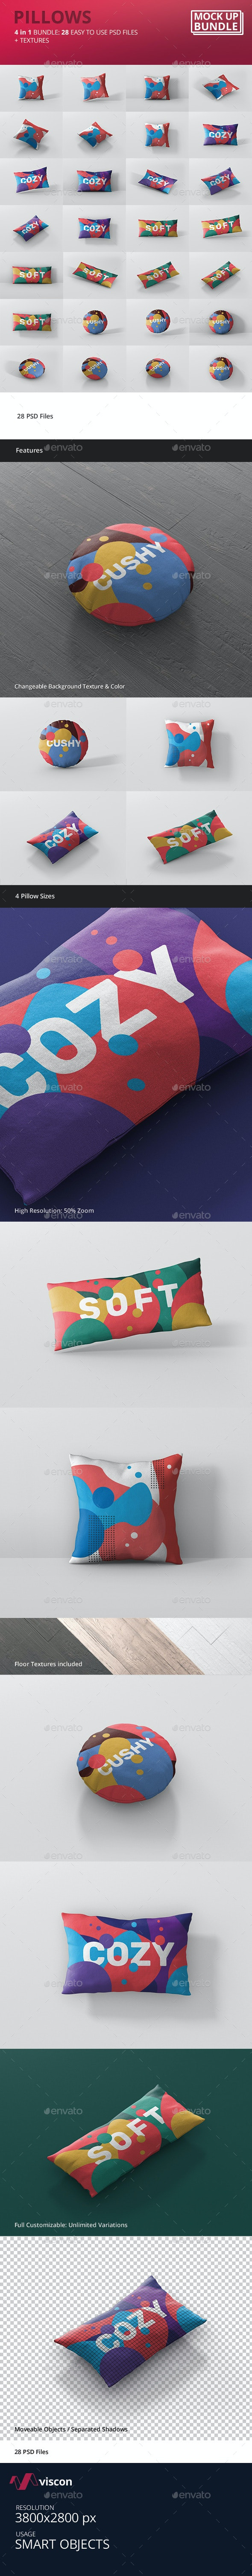 Pillow Mockup Bundle - Miscellaneous Product Mock-Ups